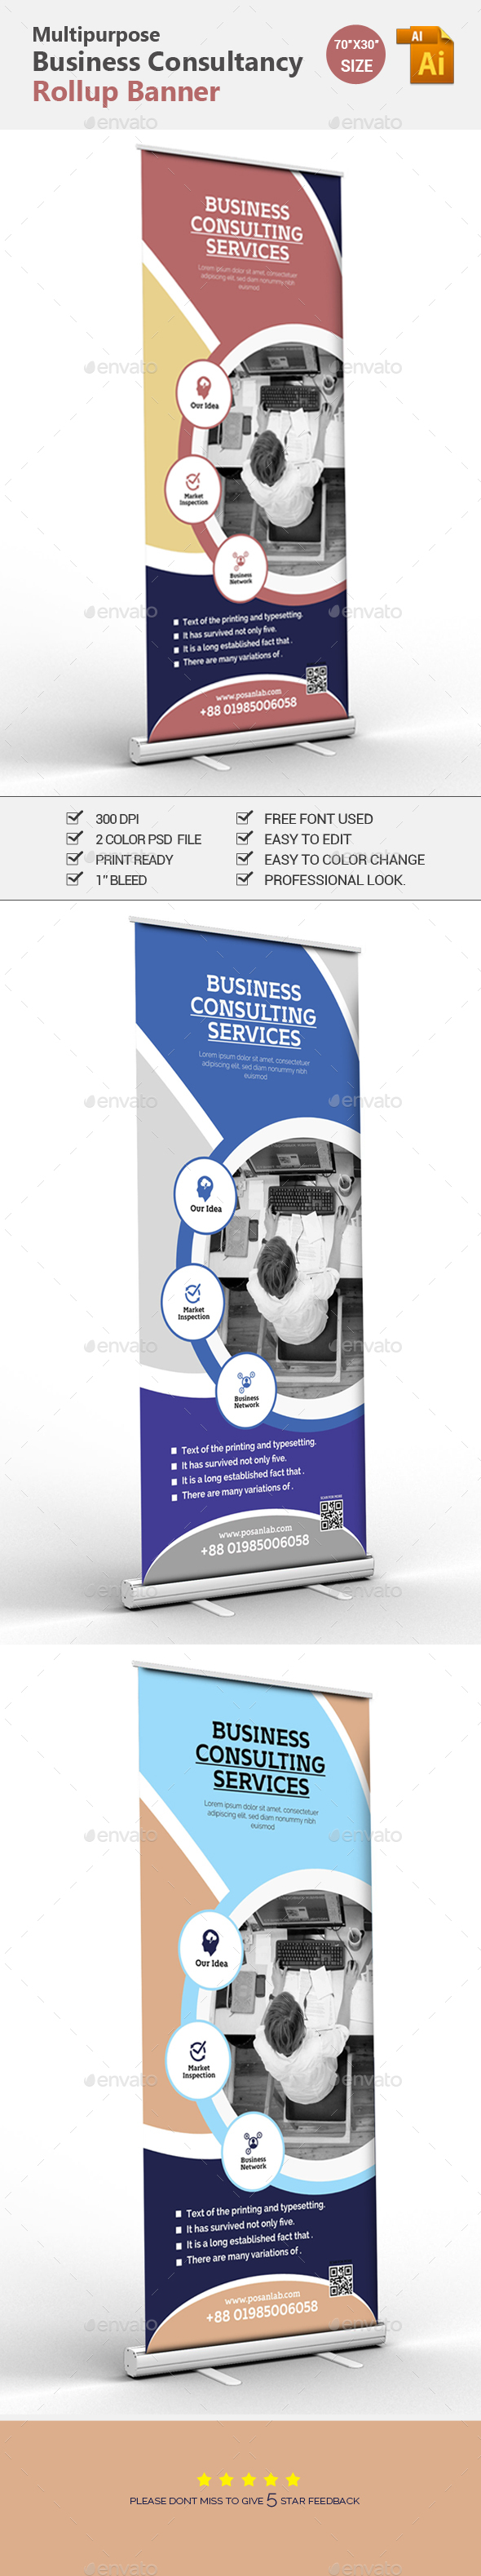 Corporate Professional Roll-up Banner - Corporate Business Cards